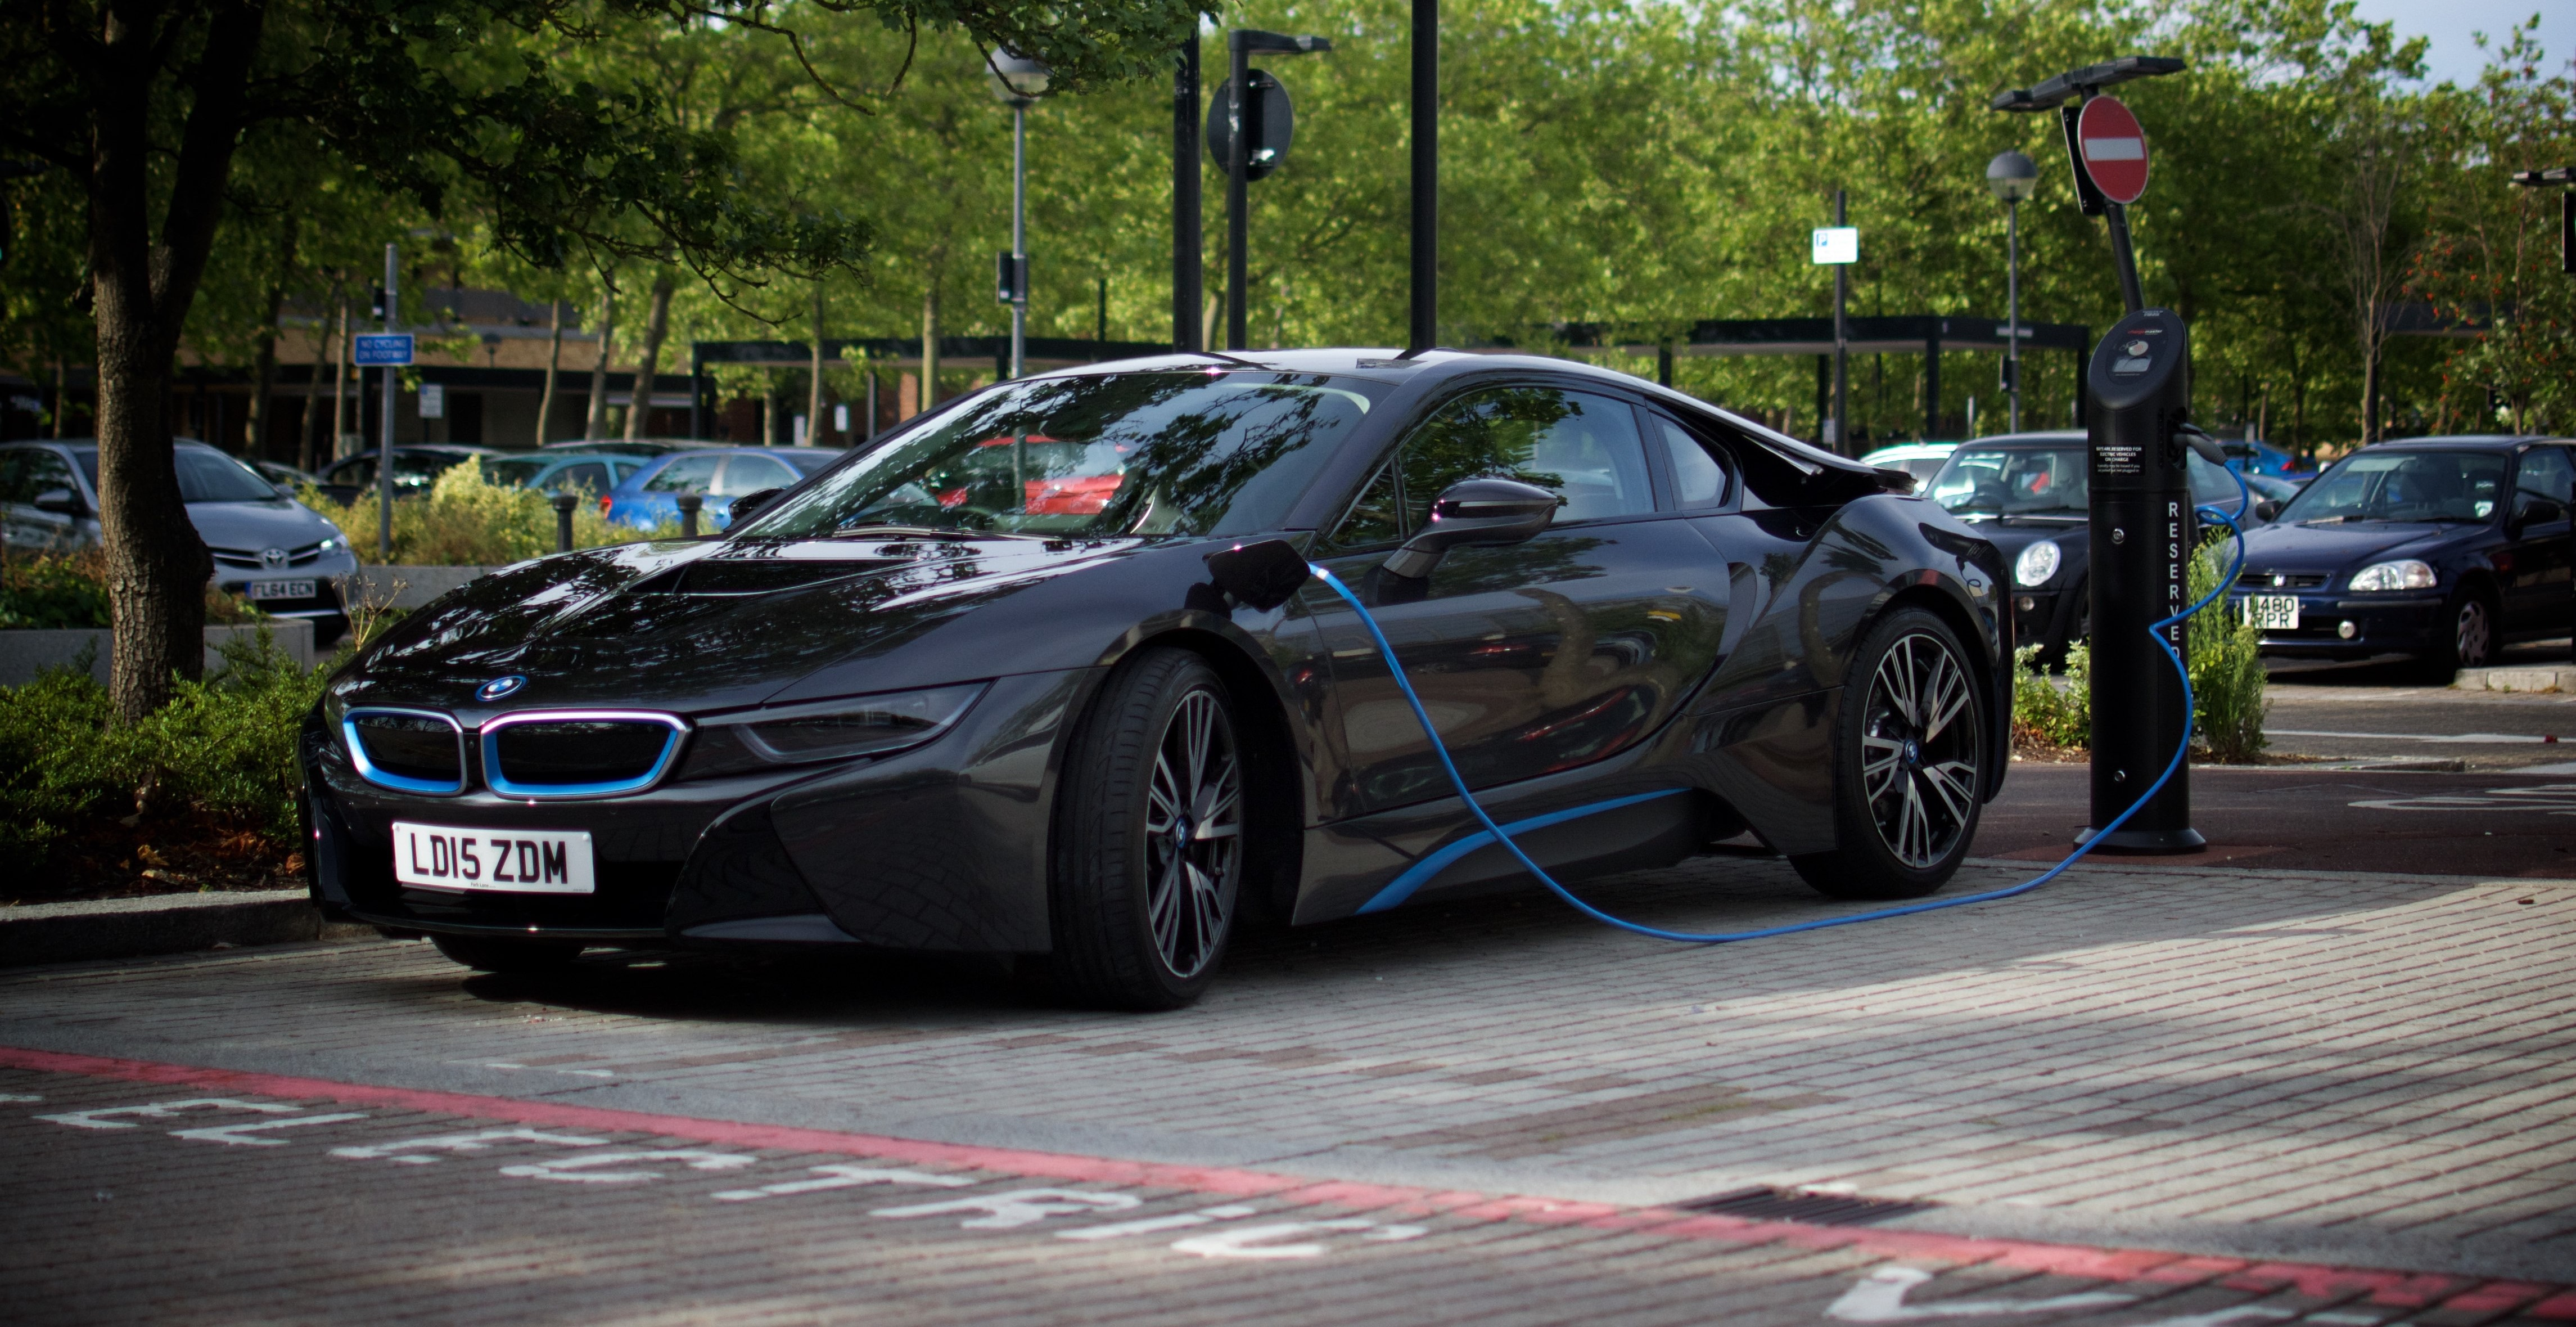 Start 2018 Off In Style With An Amazing Week In The Bmw I8 Ev